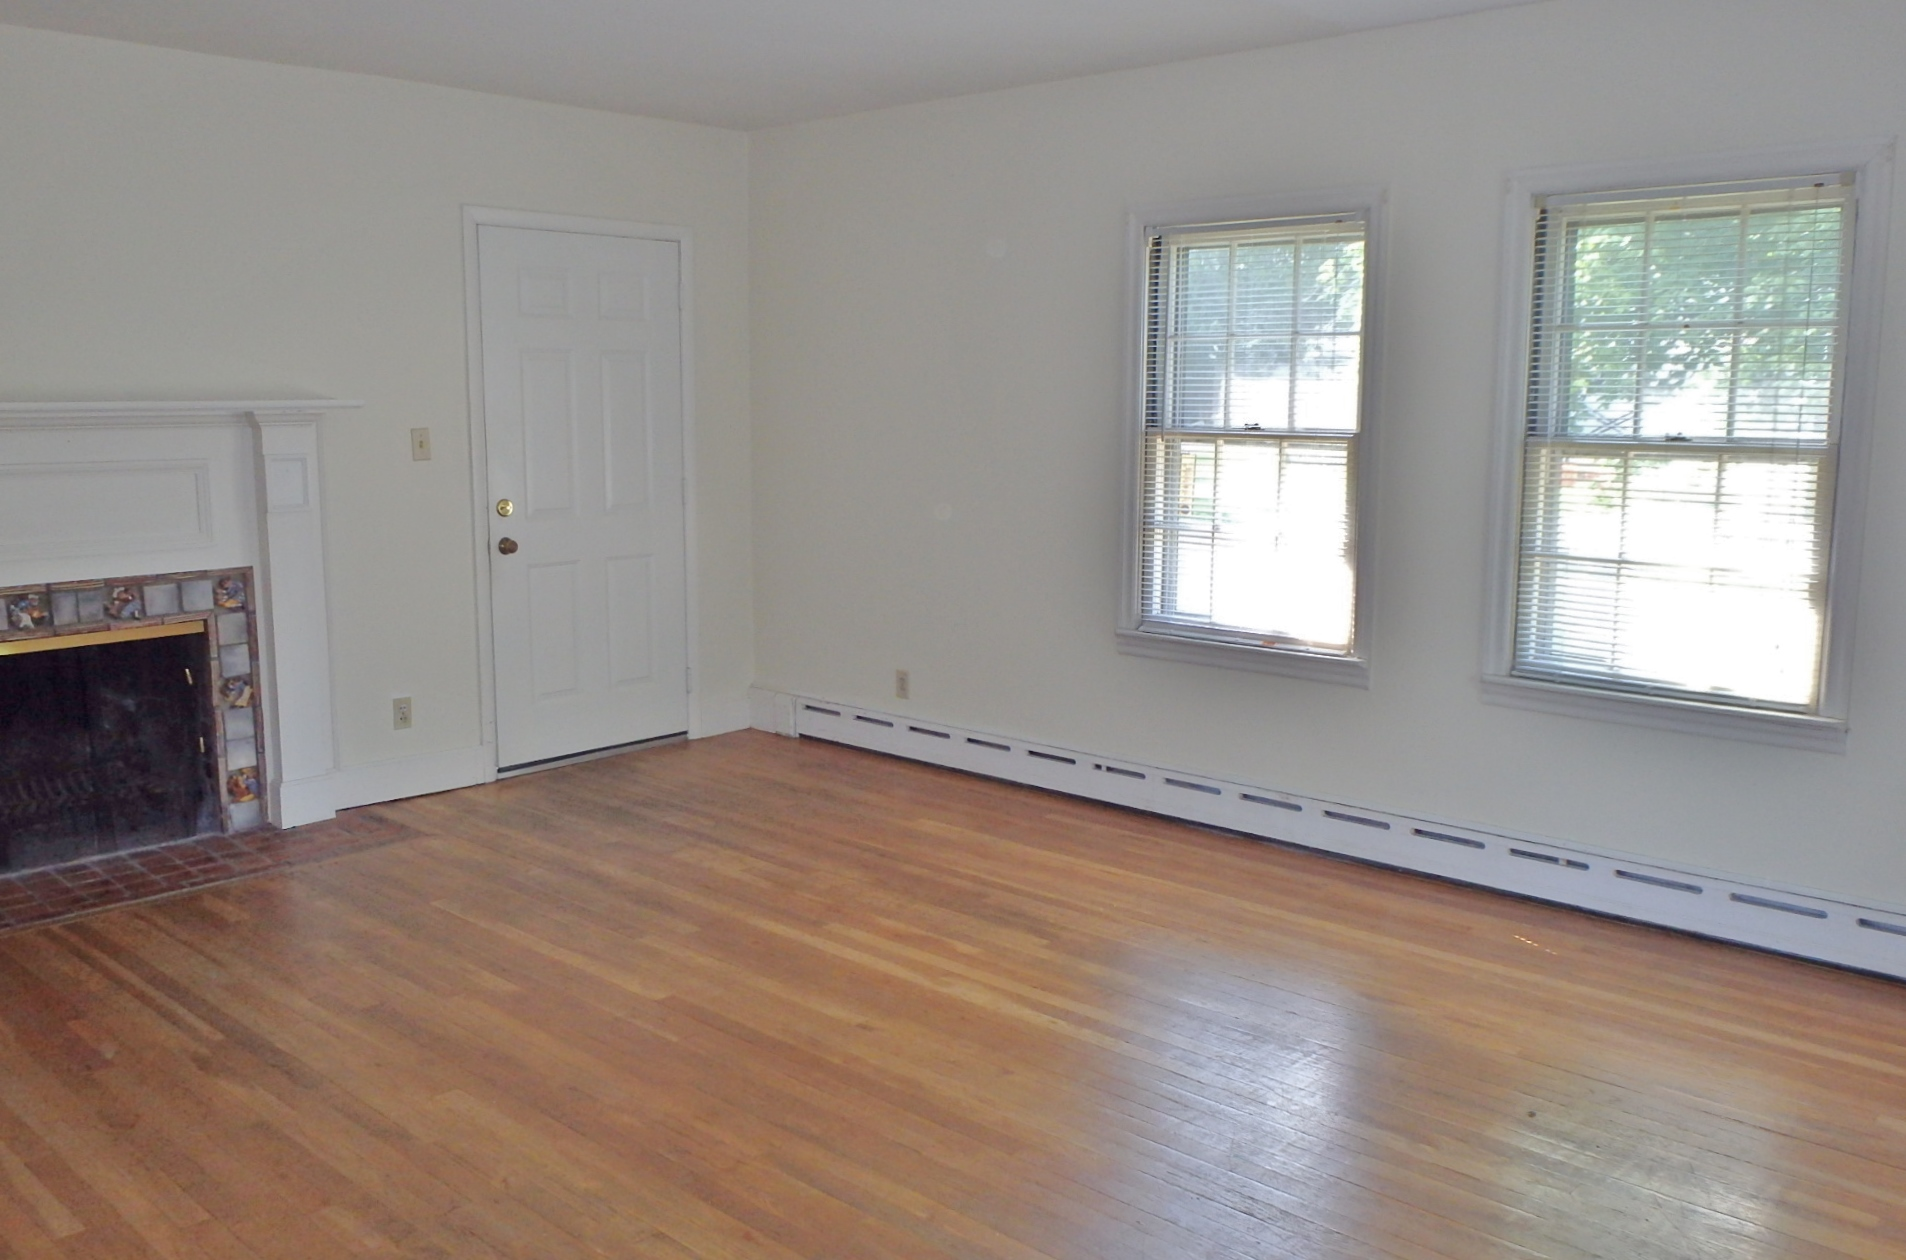 Living room photo of the 2-bedroom apartment for rent at 404 W. Fairmount Avenue, State College PA.